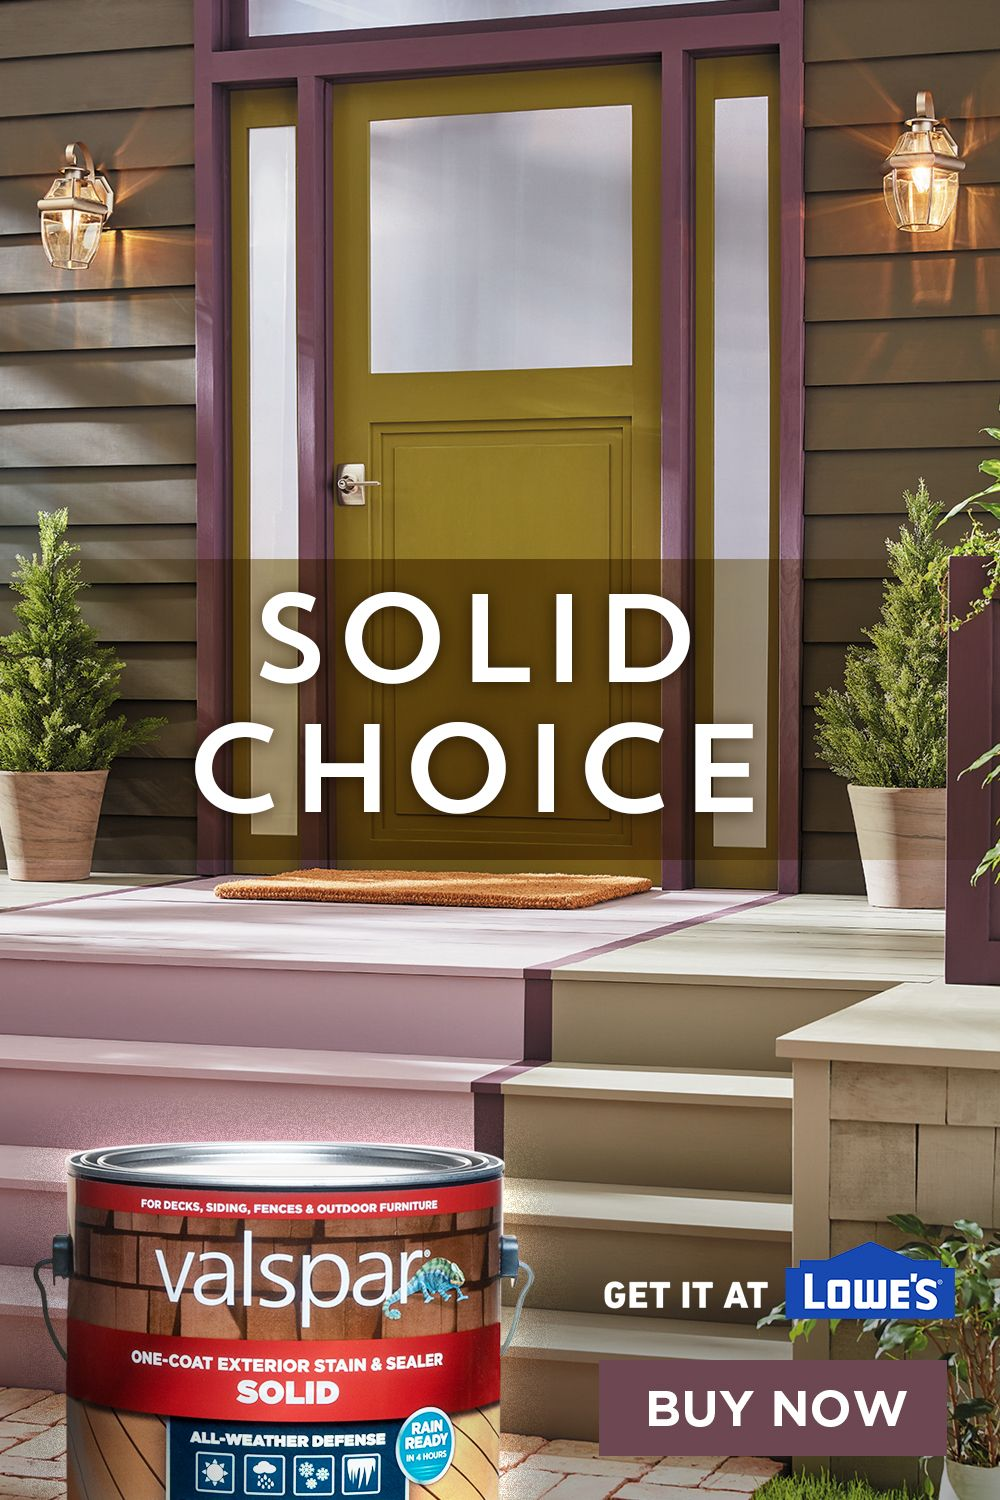 You Want A Solid Deck Stain But You Don T Want The Same Old Look Valspar Stain Has You Covered With Any Color Deck Stain Colors Staining Deck Exterior Stain